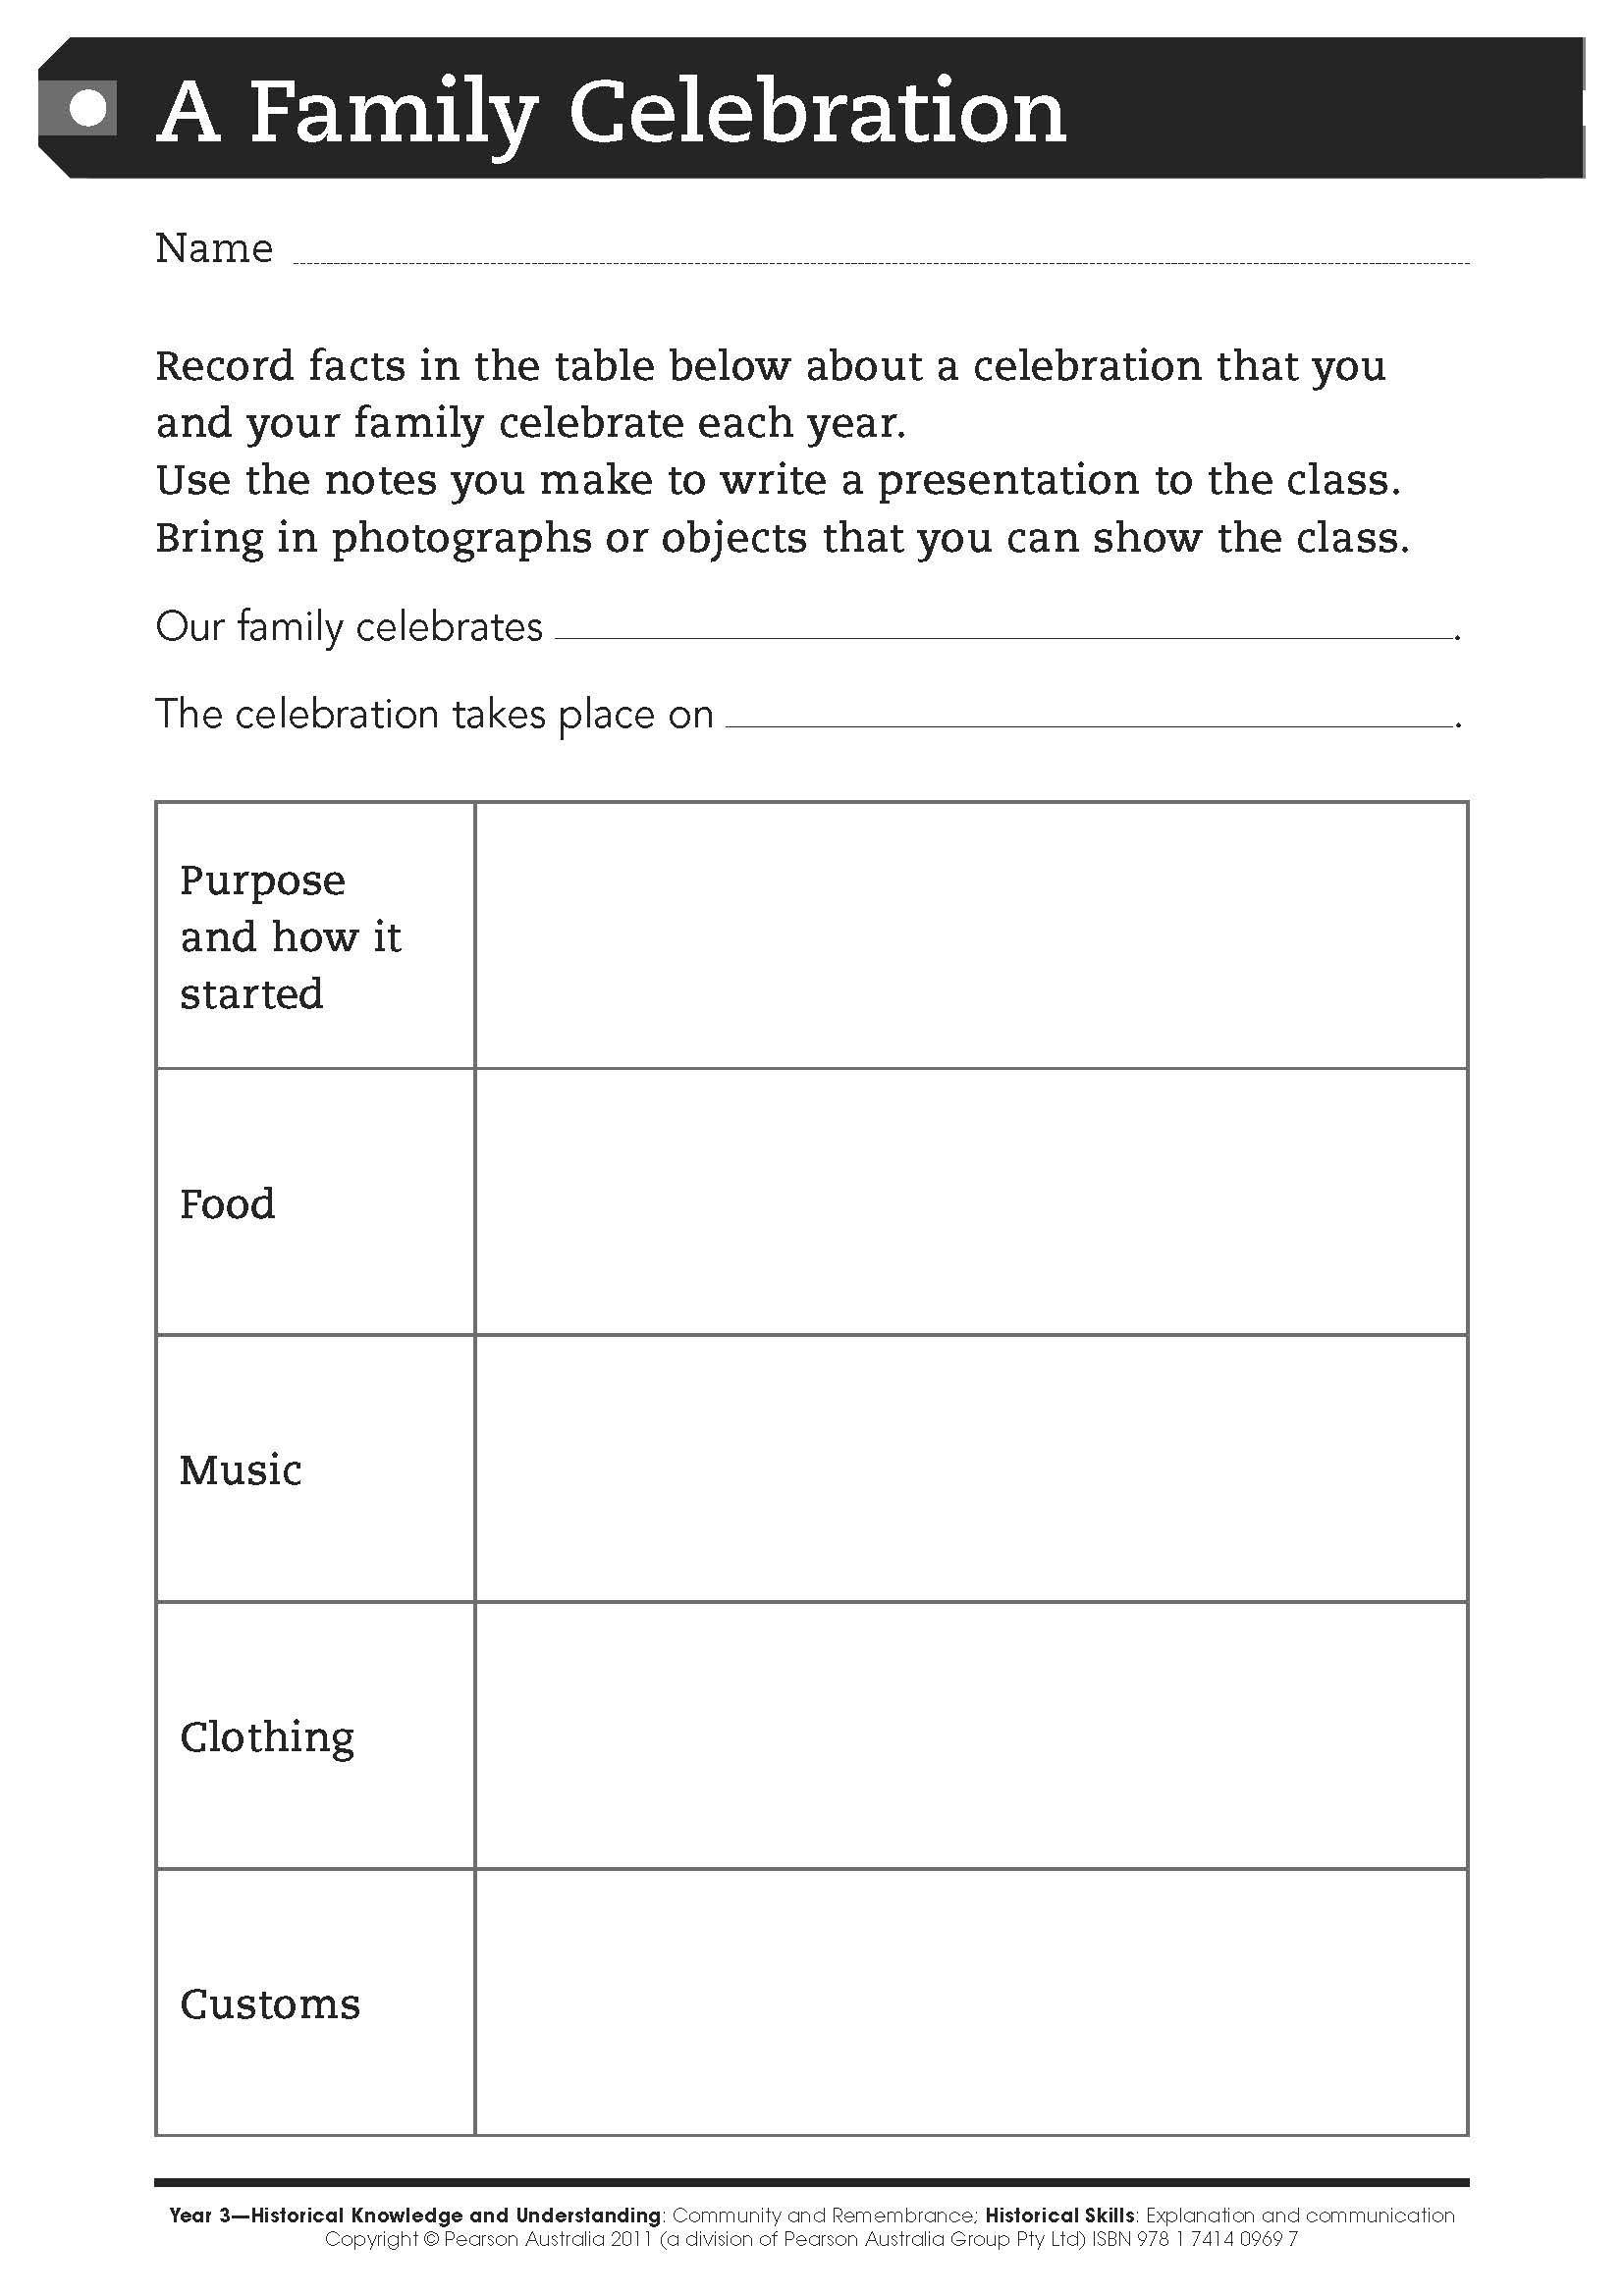 Free Worksheet A Family Celebration For Middle Primary Students This Worksheet Primary Students Family Celebrations Life Coaching Worksheets